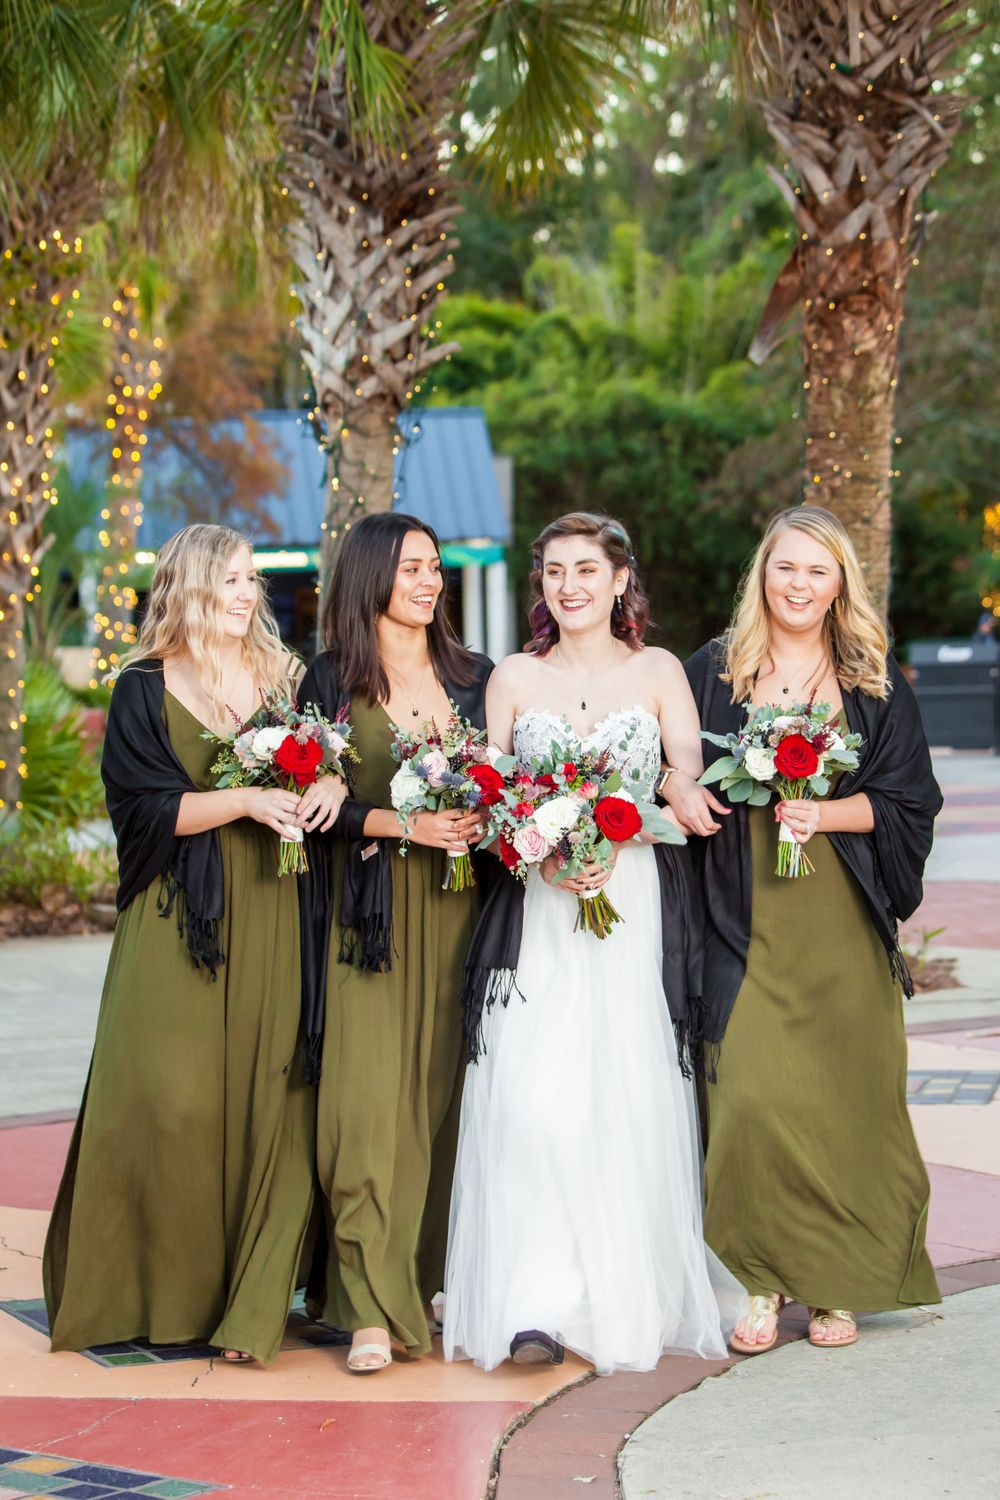 Bride and bridesmaids portraits before their wedding ceremony at Riverbanks Zoo in Columbia, SC